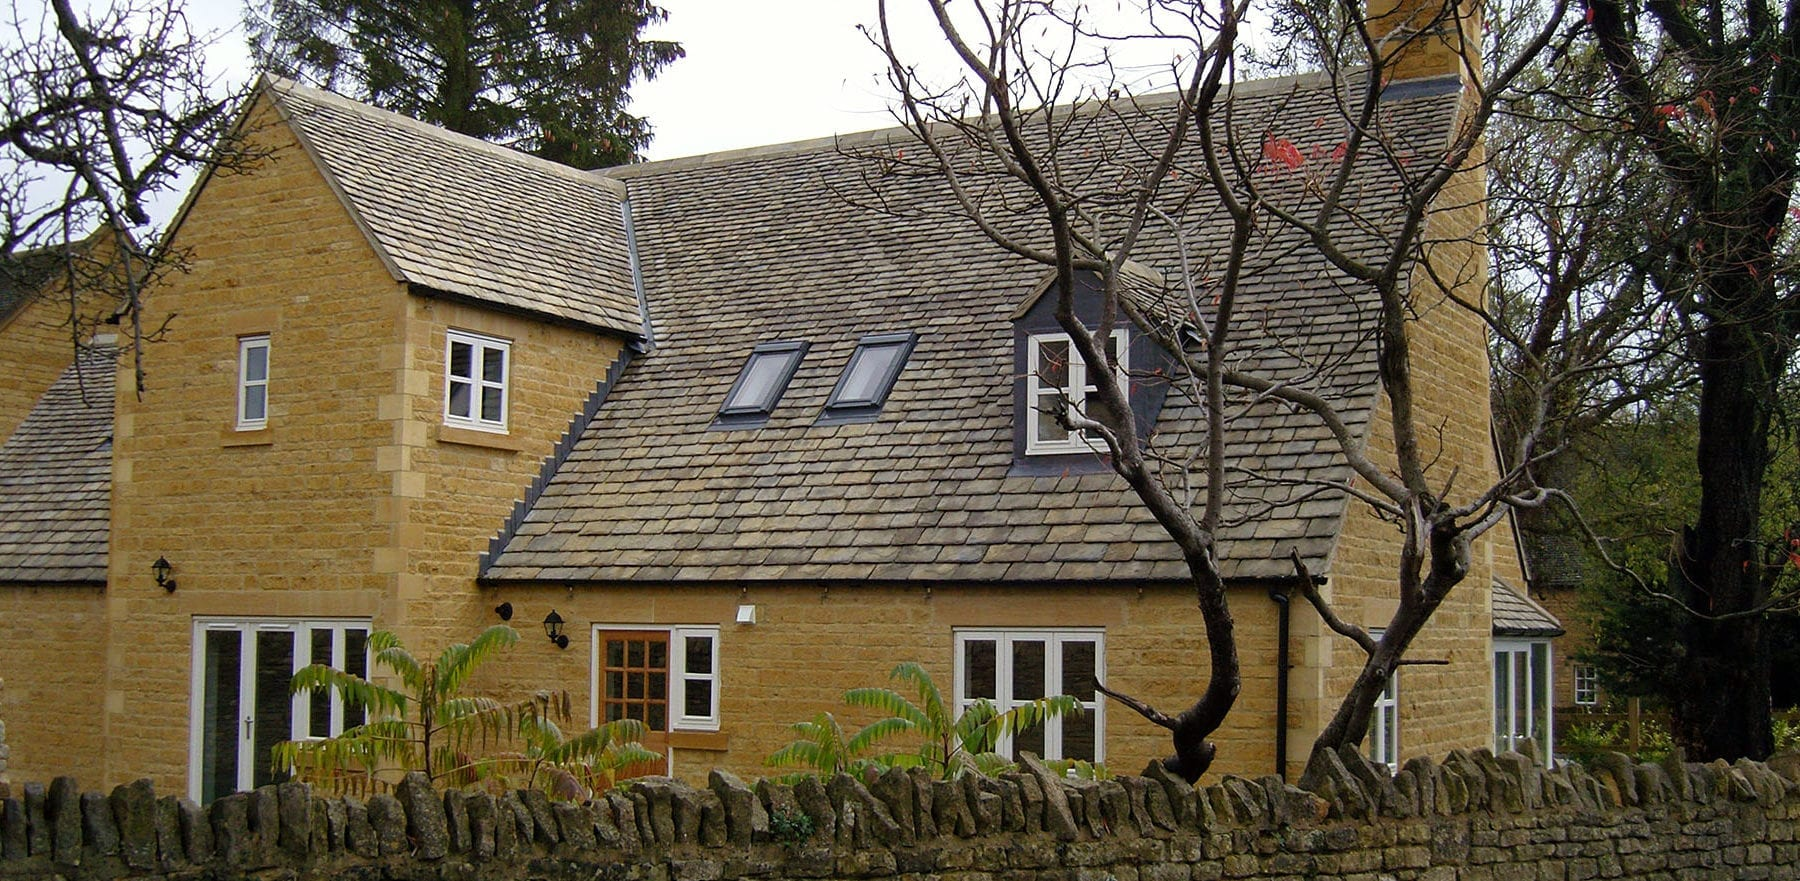 Lifestiles - Natural Stone Aged Roof Tiles - Cirencester, England 4